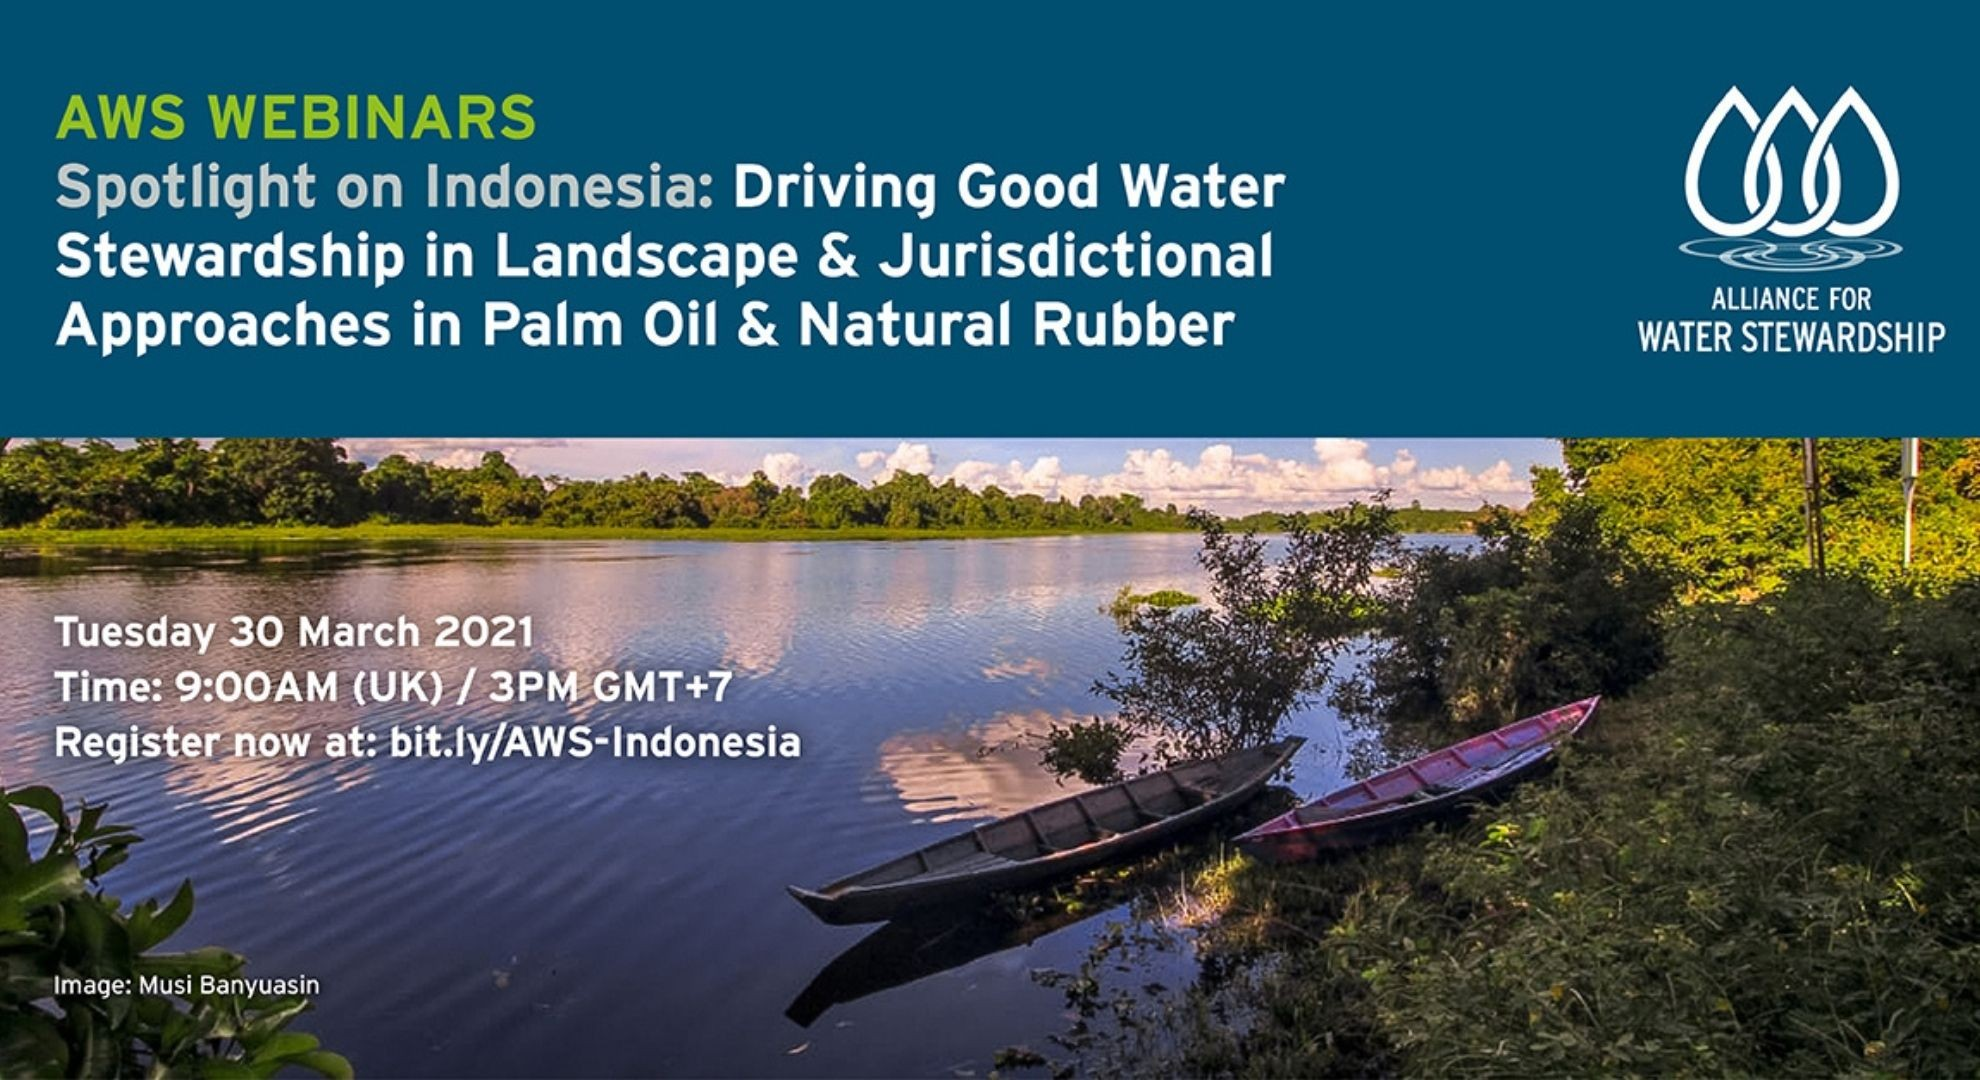 AWS Spotlight on Indonesia: Driving Good Water Stewardship in Landscape & Jurisdictional Approaches in Palm Oil & Natural Rubber